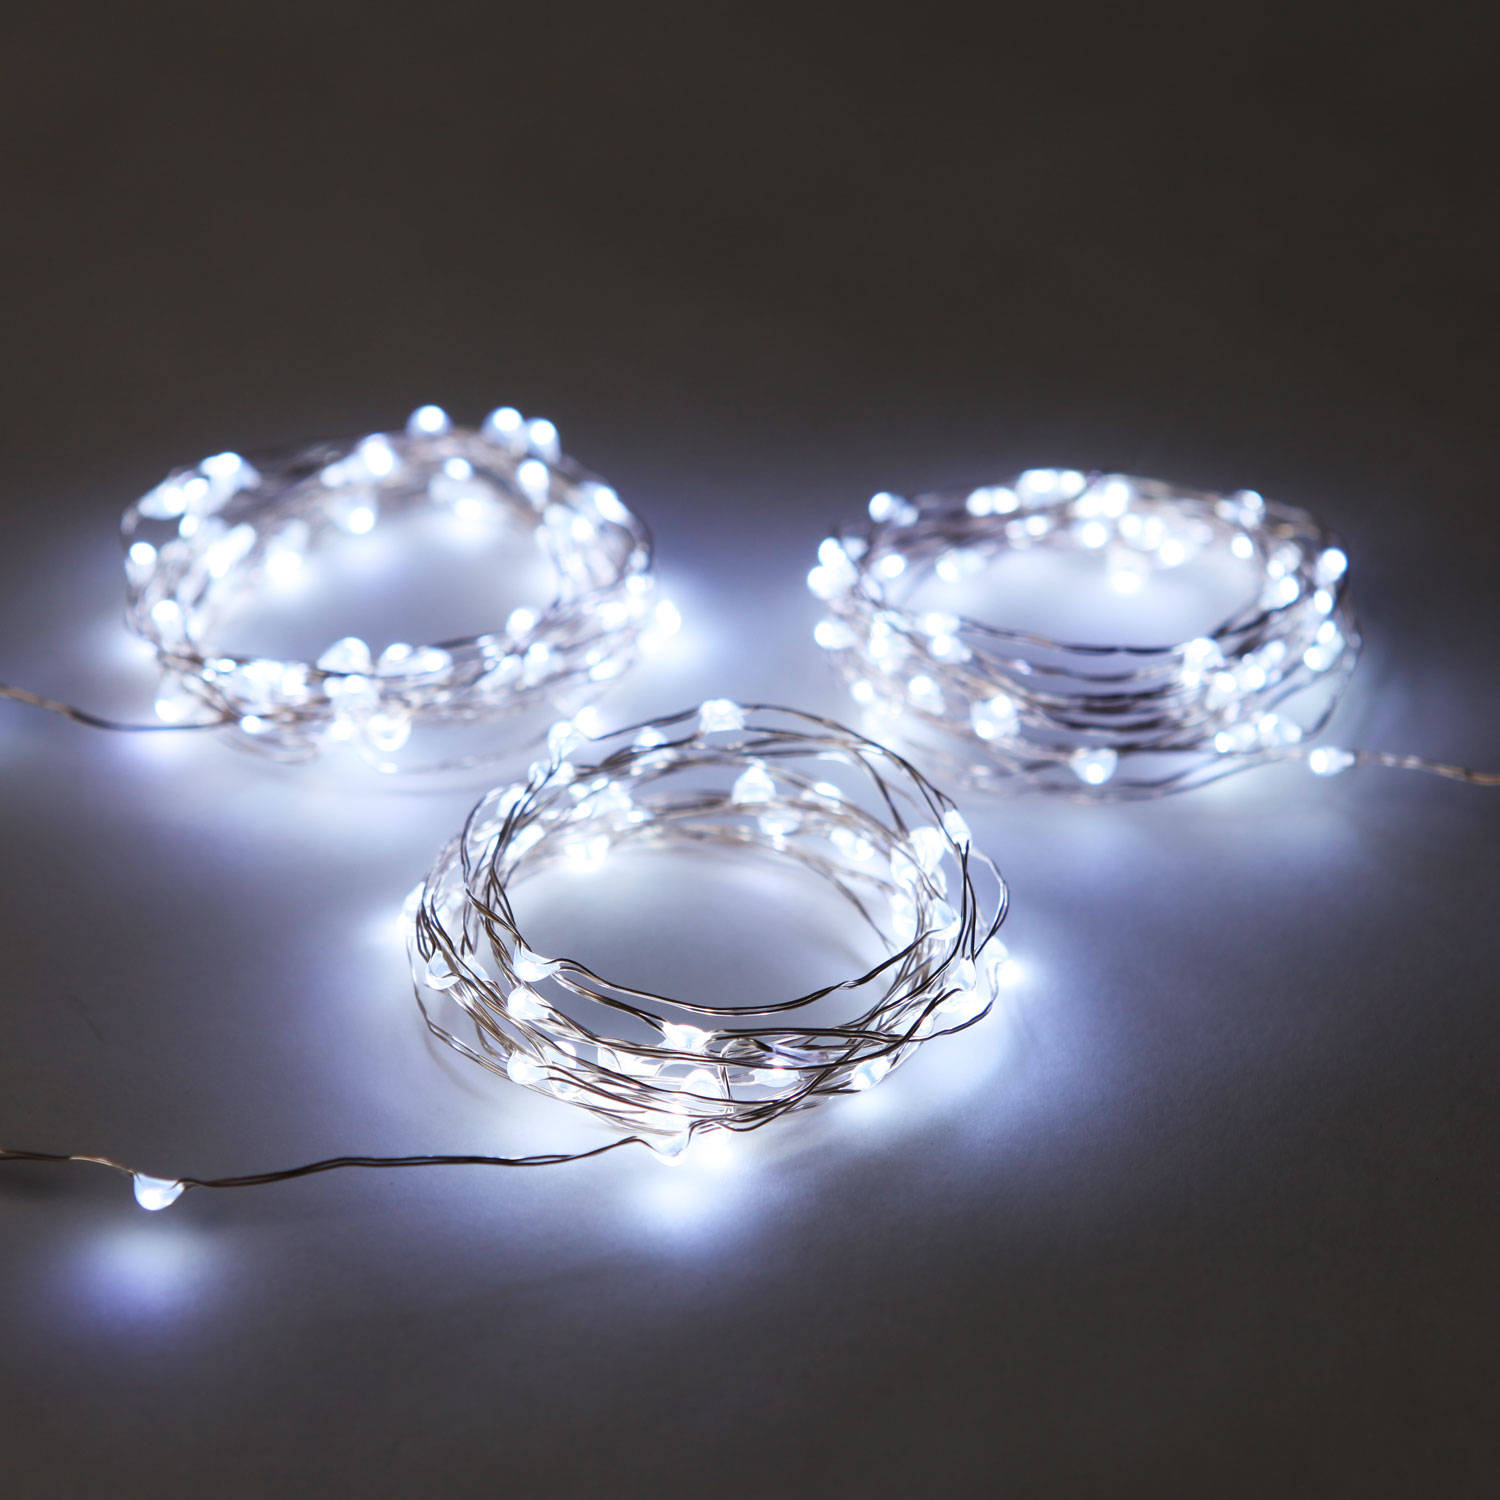 String Lights With Wire : Cool White 50 LED Silver Wire Battery String Light, Set of 3